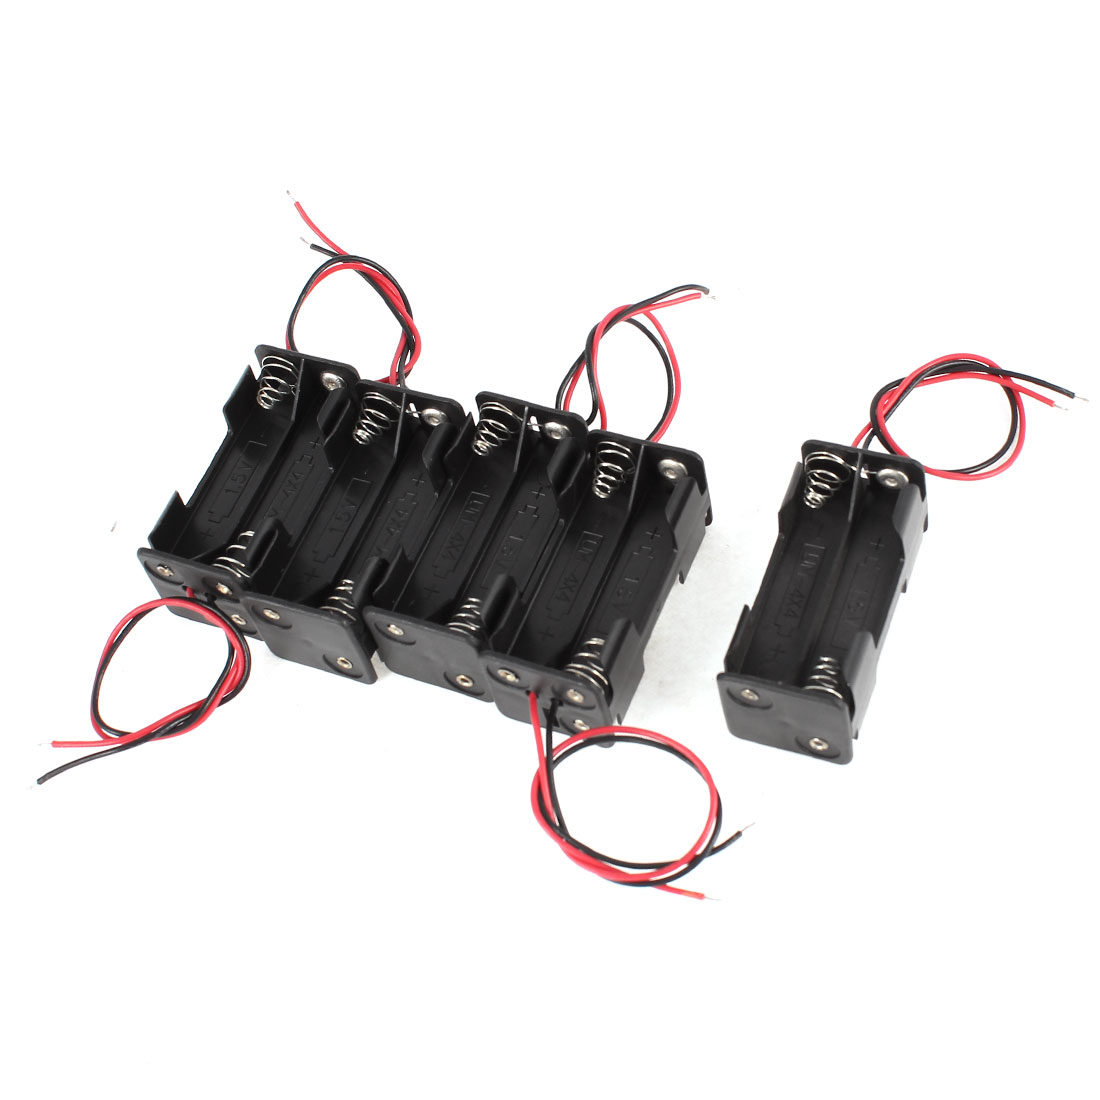 5 Pcs Black Red Wires Lead Plastic Housing Holder Case Box for 4 x AAA Batteries